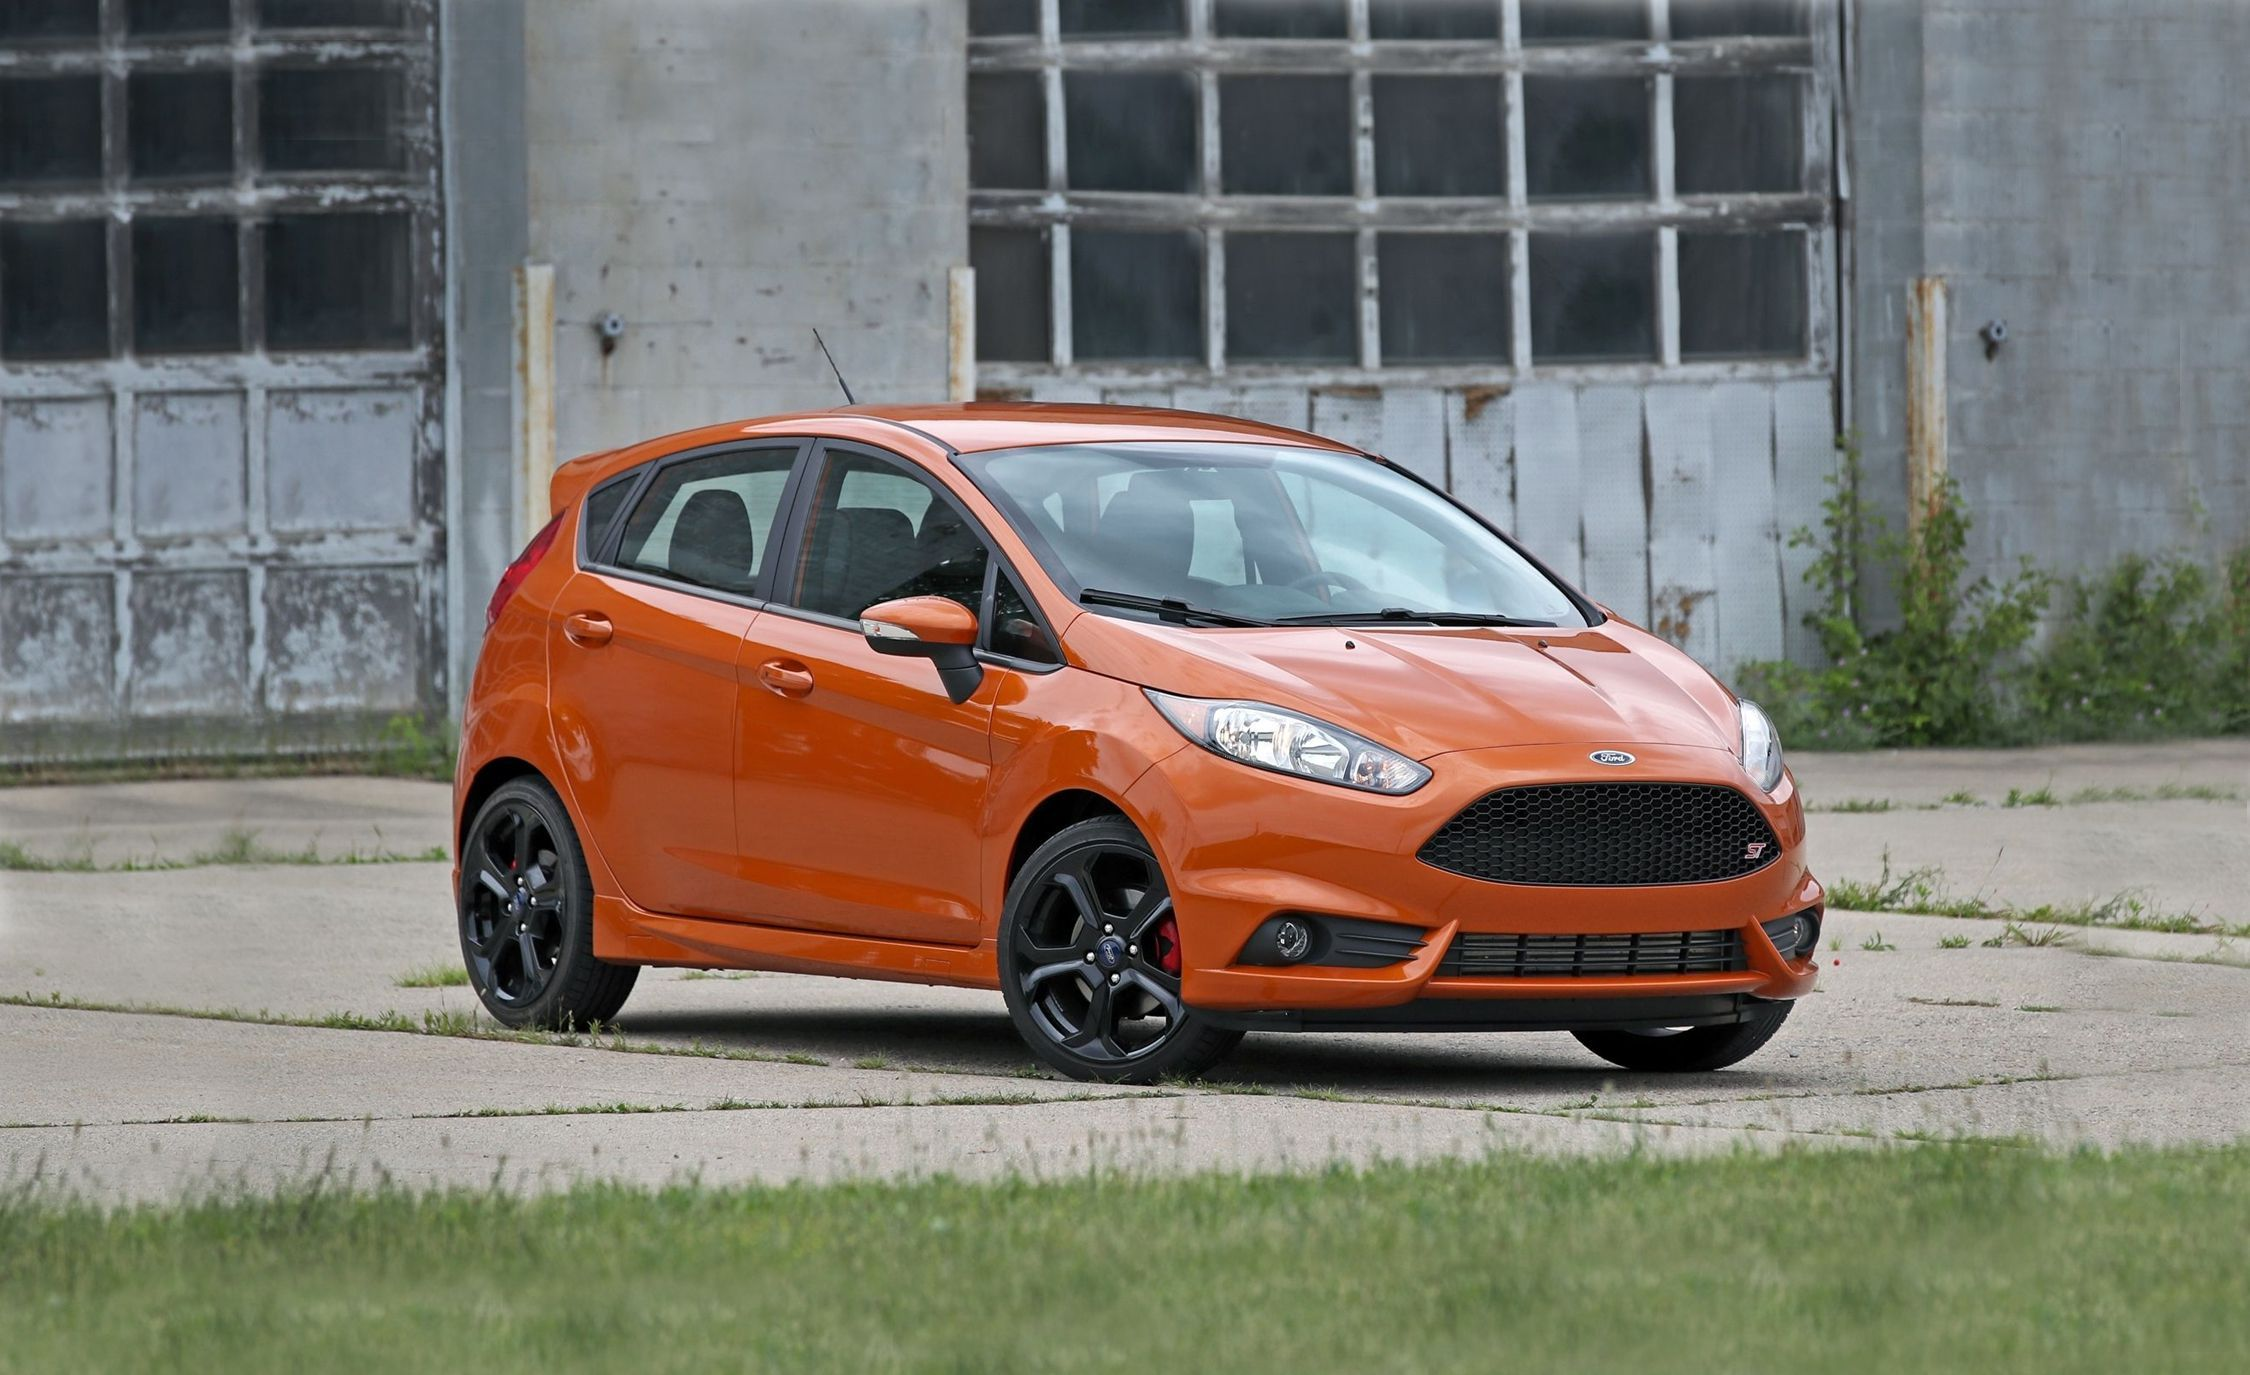 2015 Ford Fiesta St St 5dr Hb Features And Specs